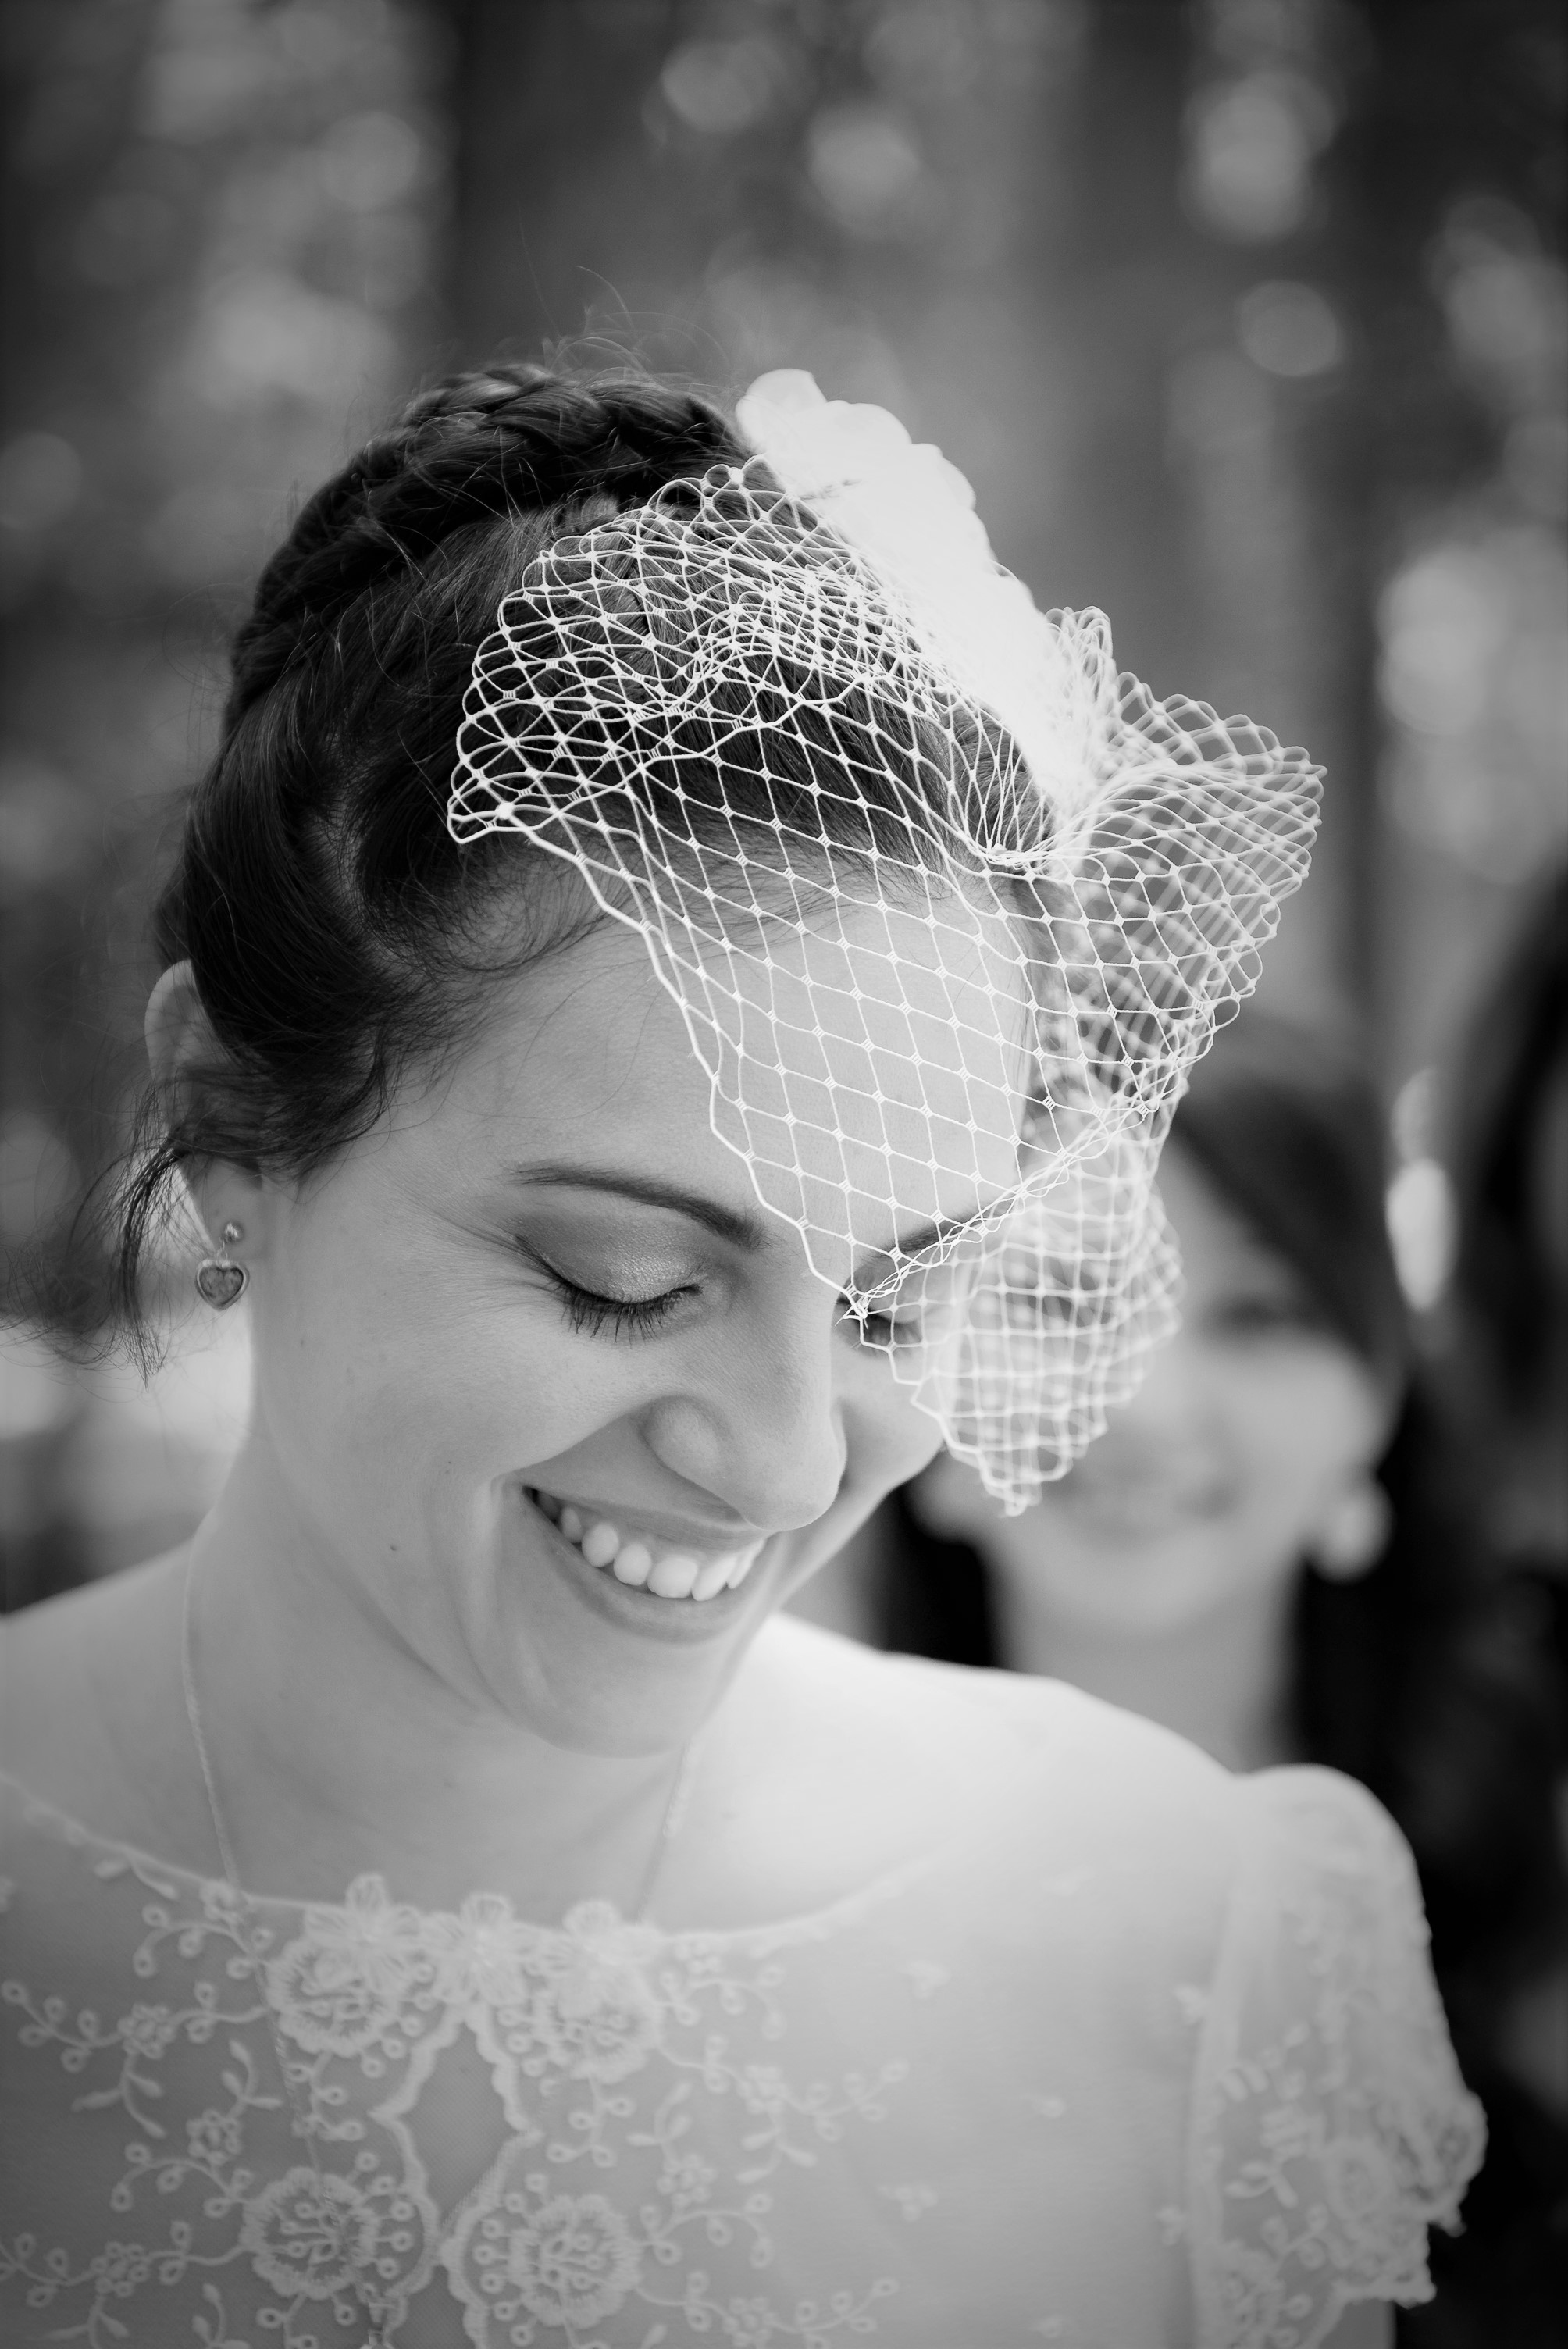 Close-up photograph of the bride.